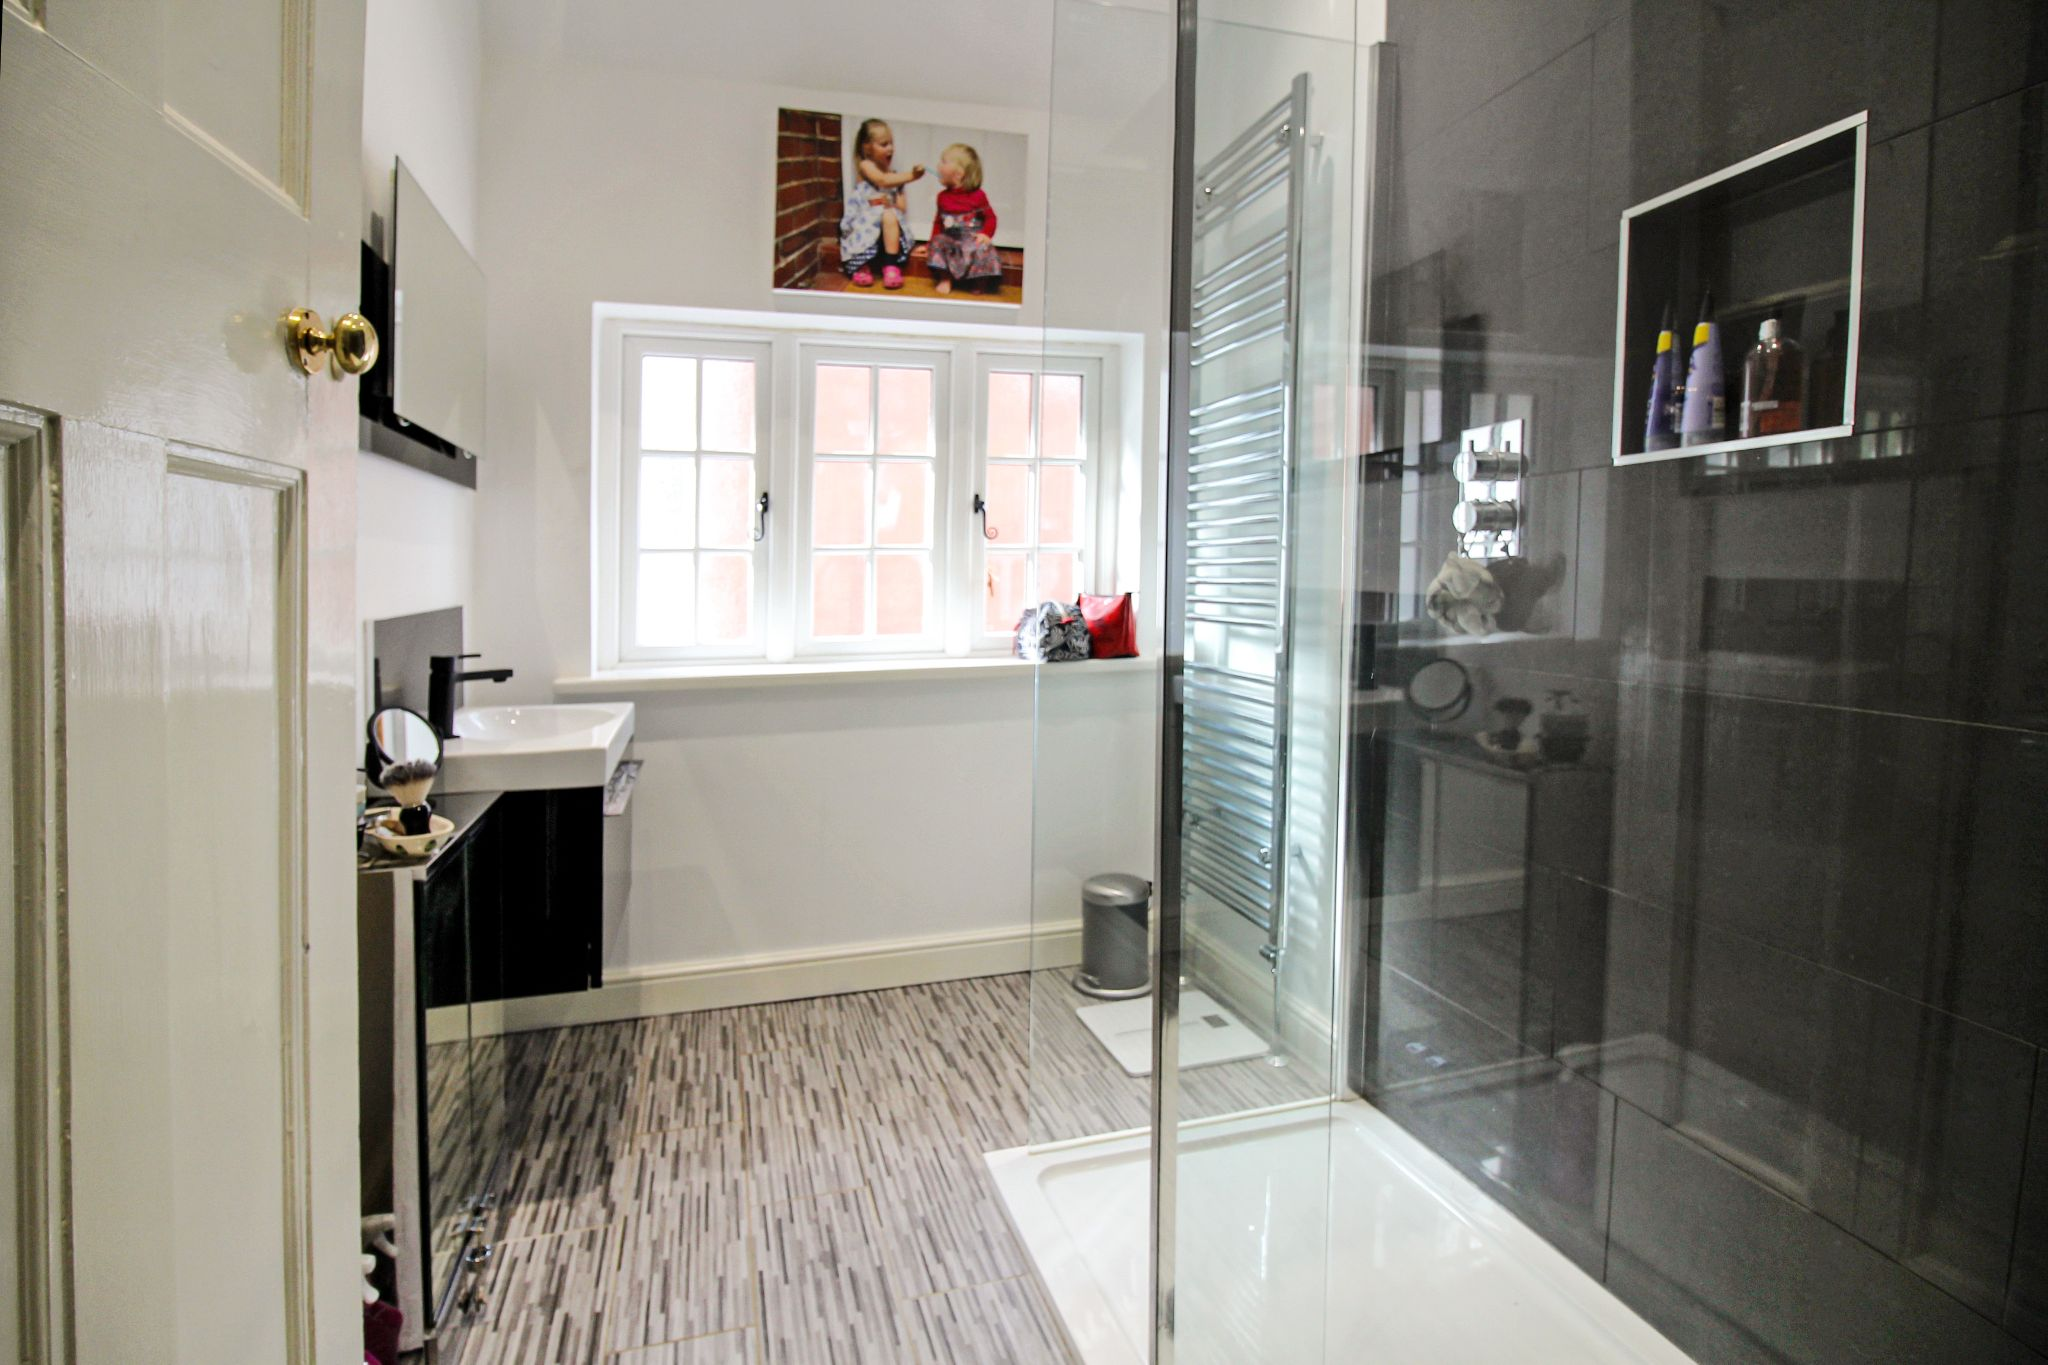 5 bedroom detached house For Sale in Solihull - Photograph 14.